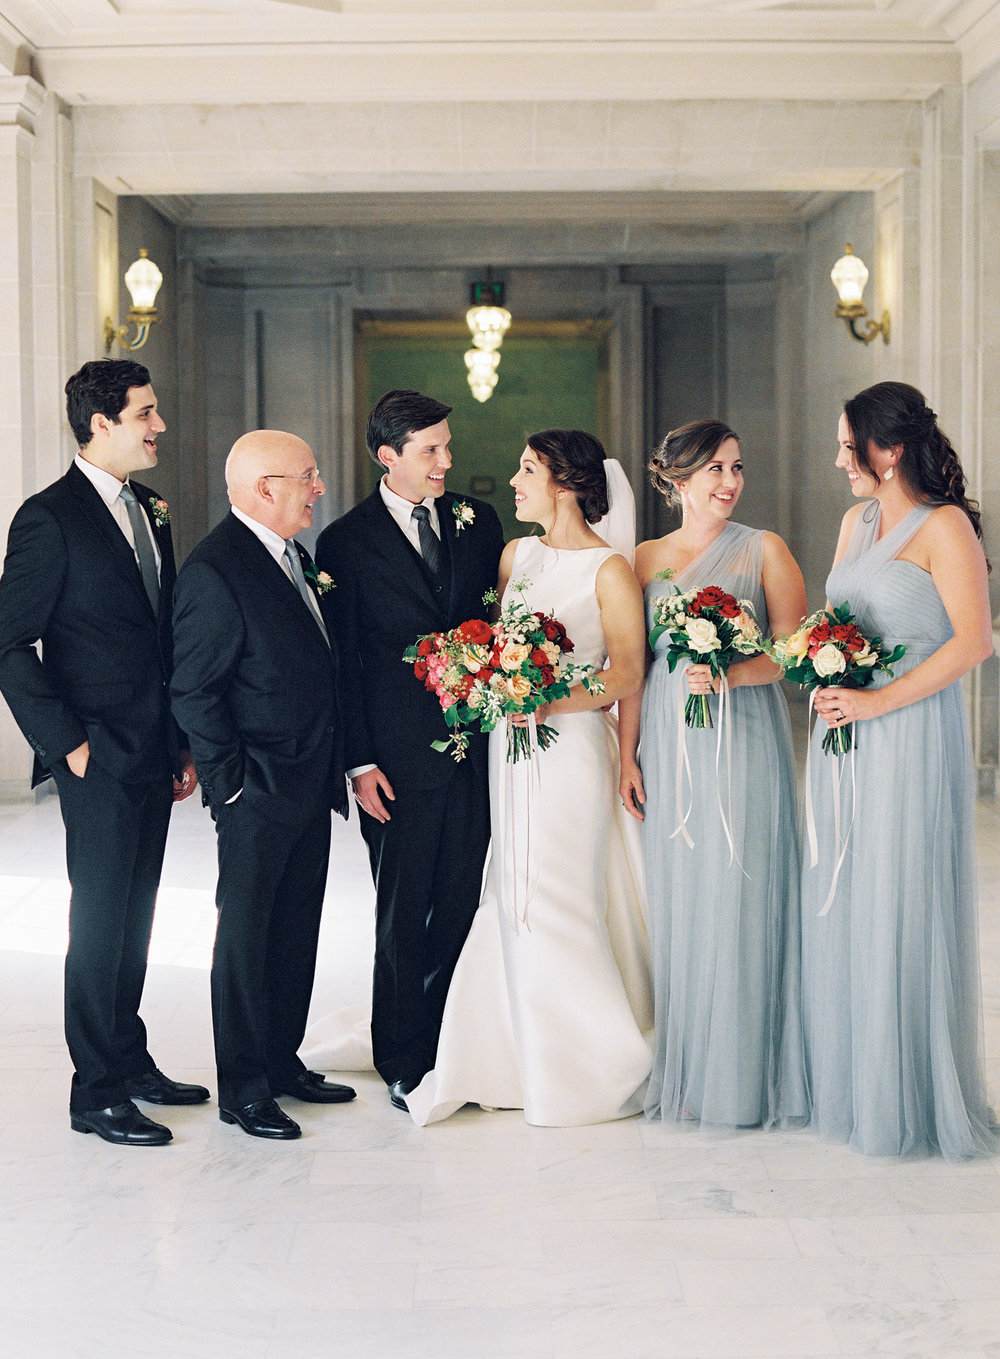 Meghan Mehan Photography - California Wedding Photographer | San Francisco City Hall Wedding 069.jpg